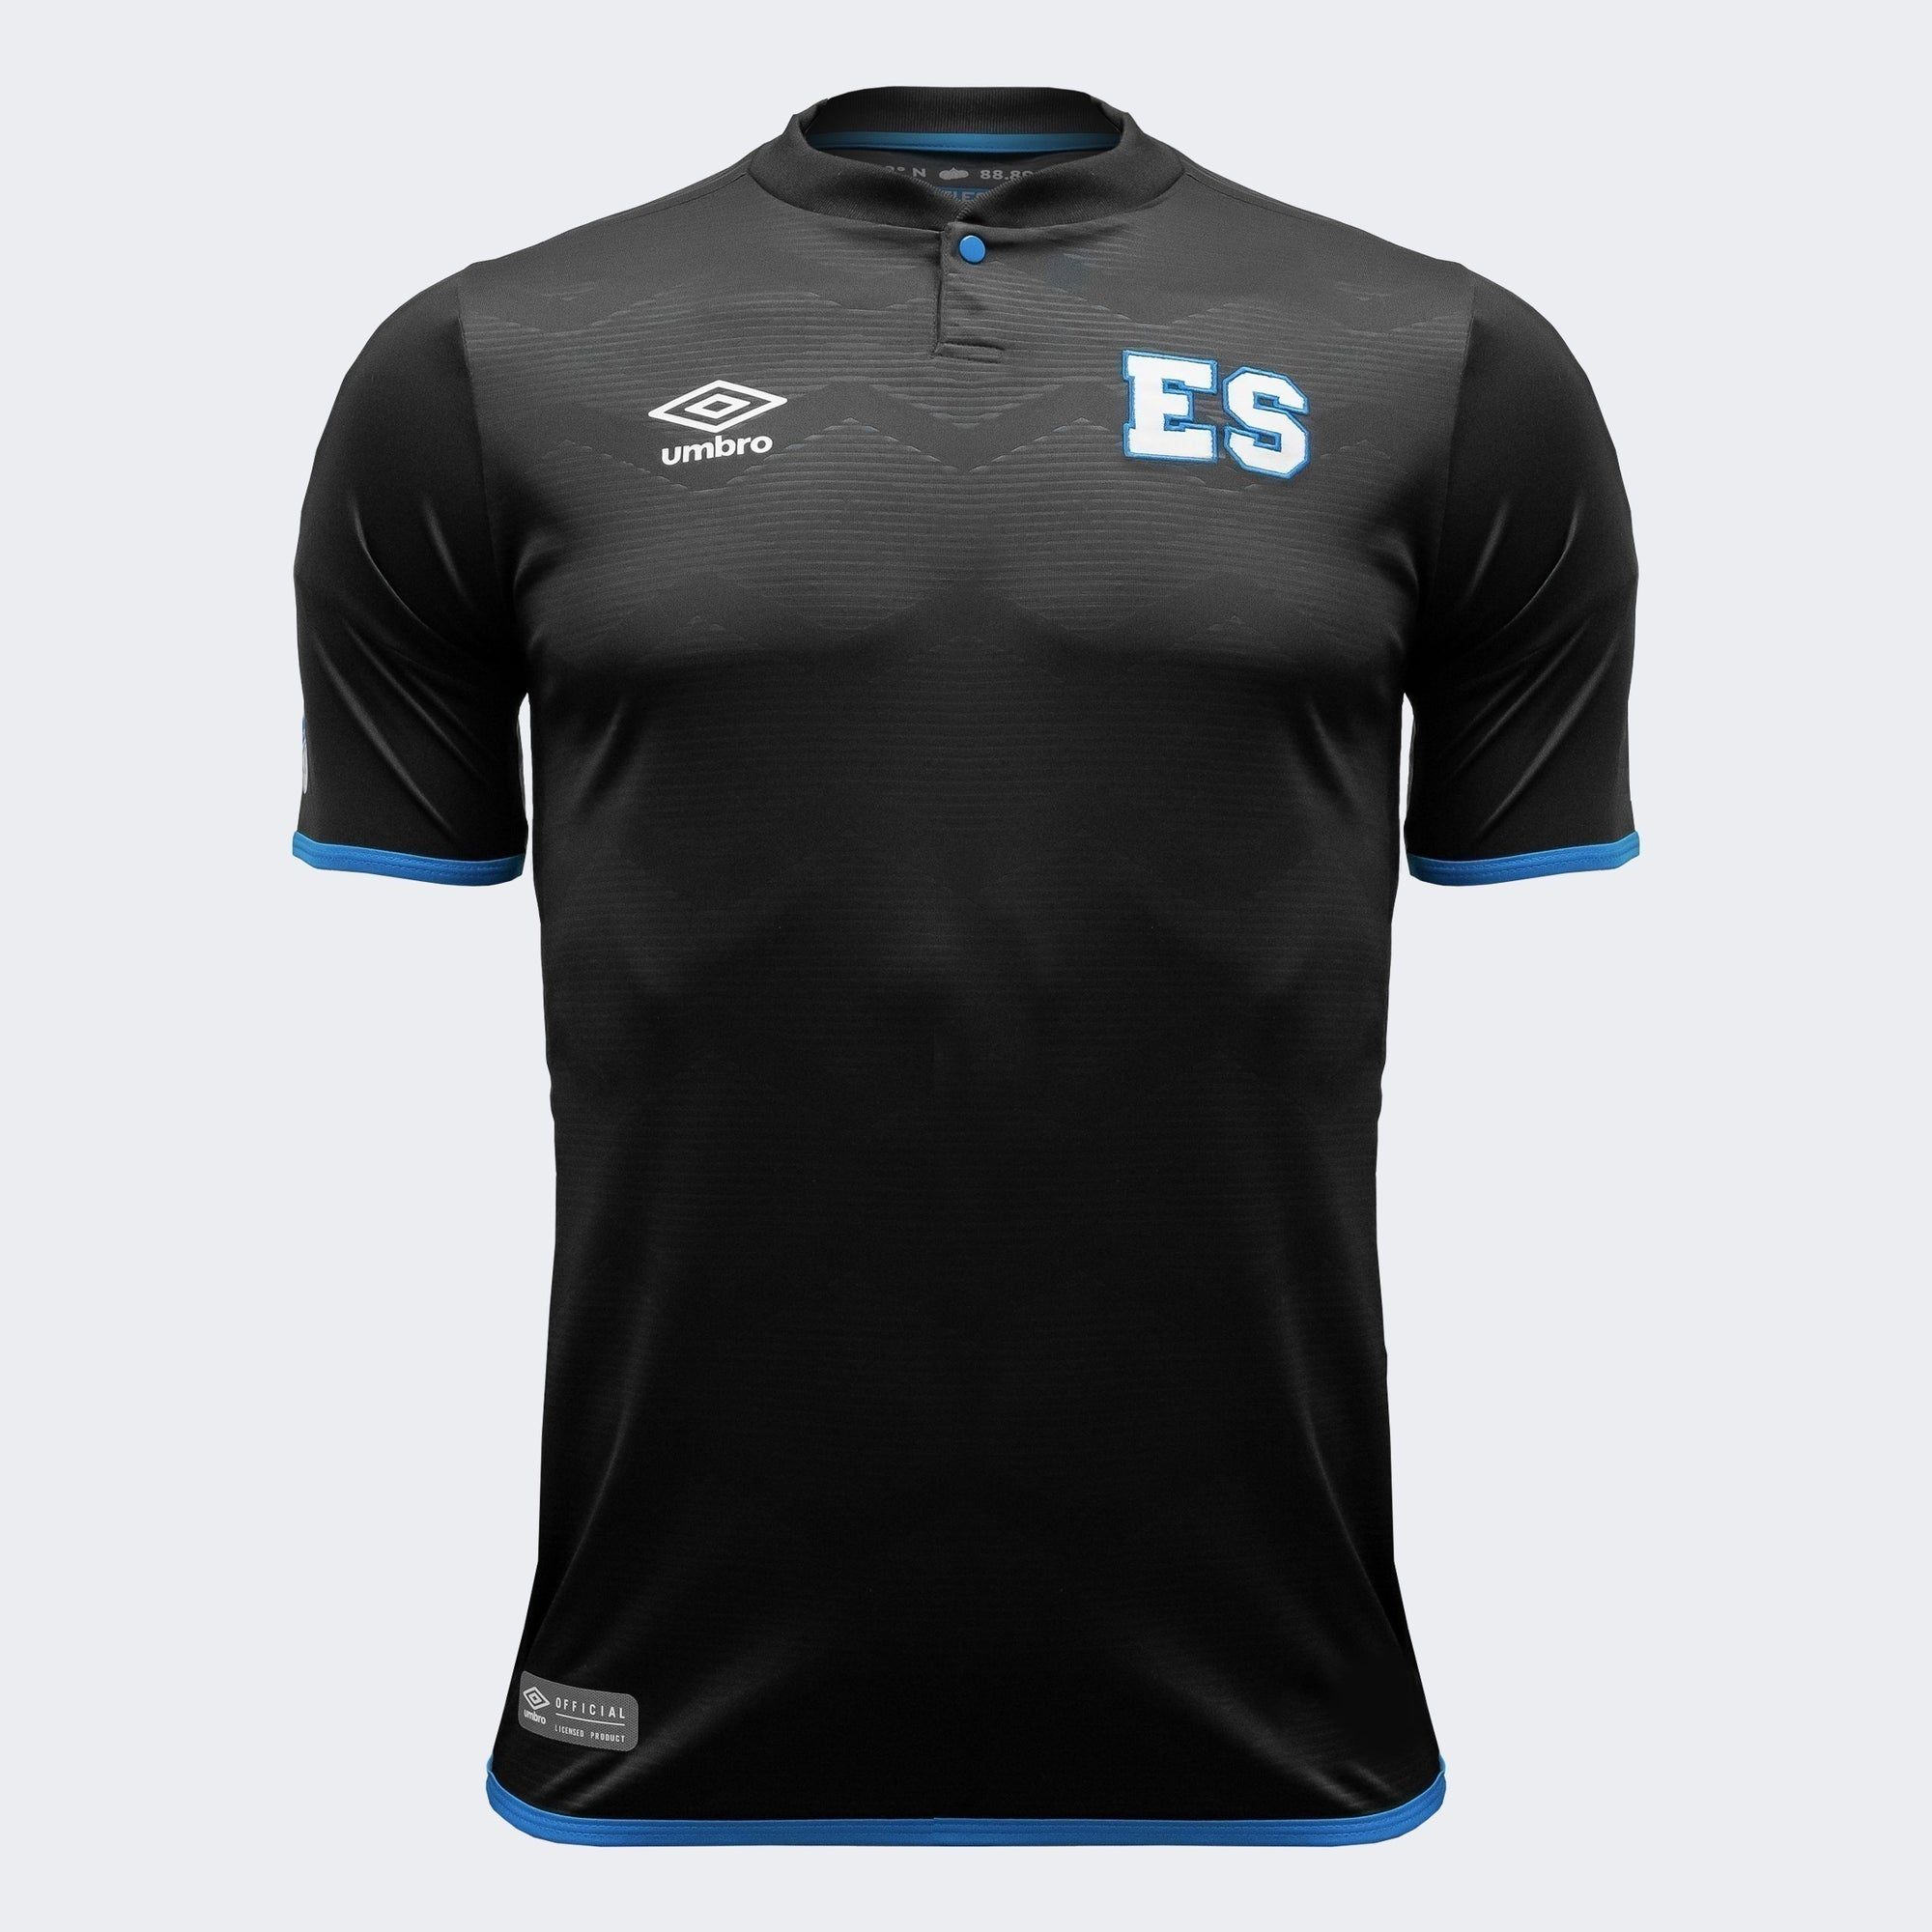 El Salvador 18/19 Third Jersey - Black/Blue